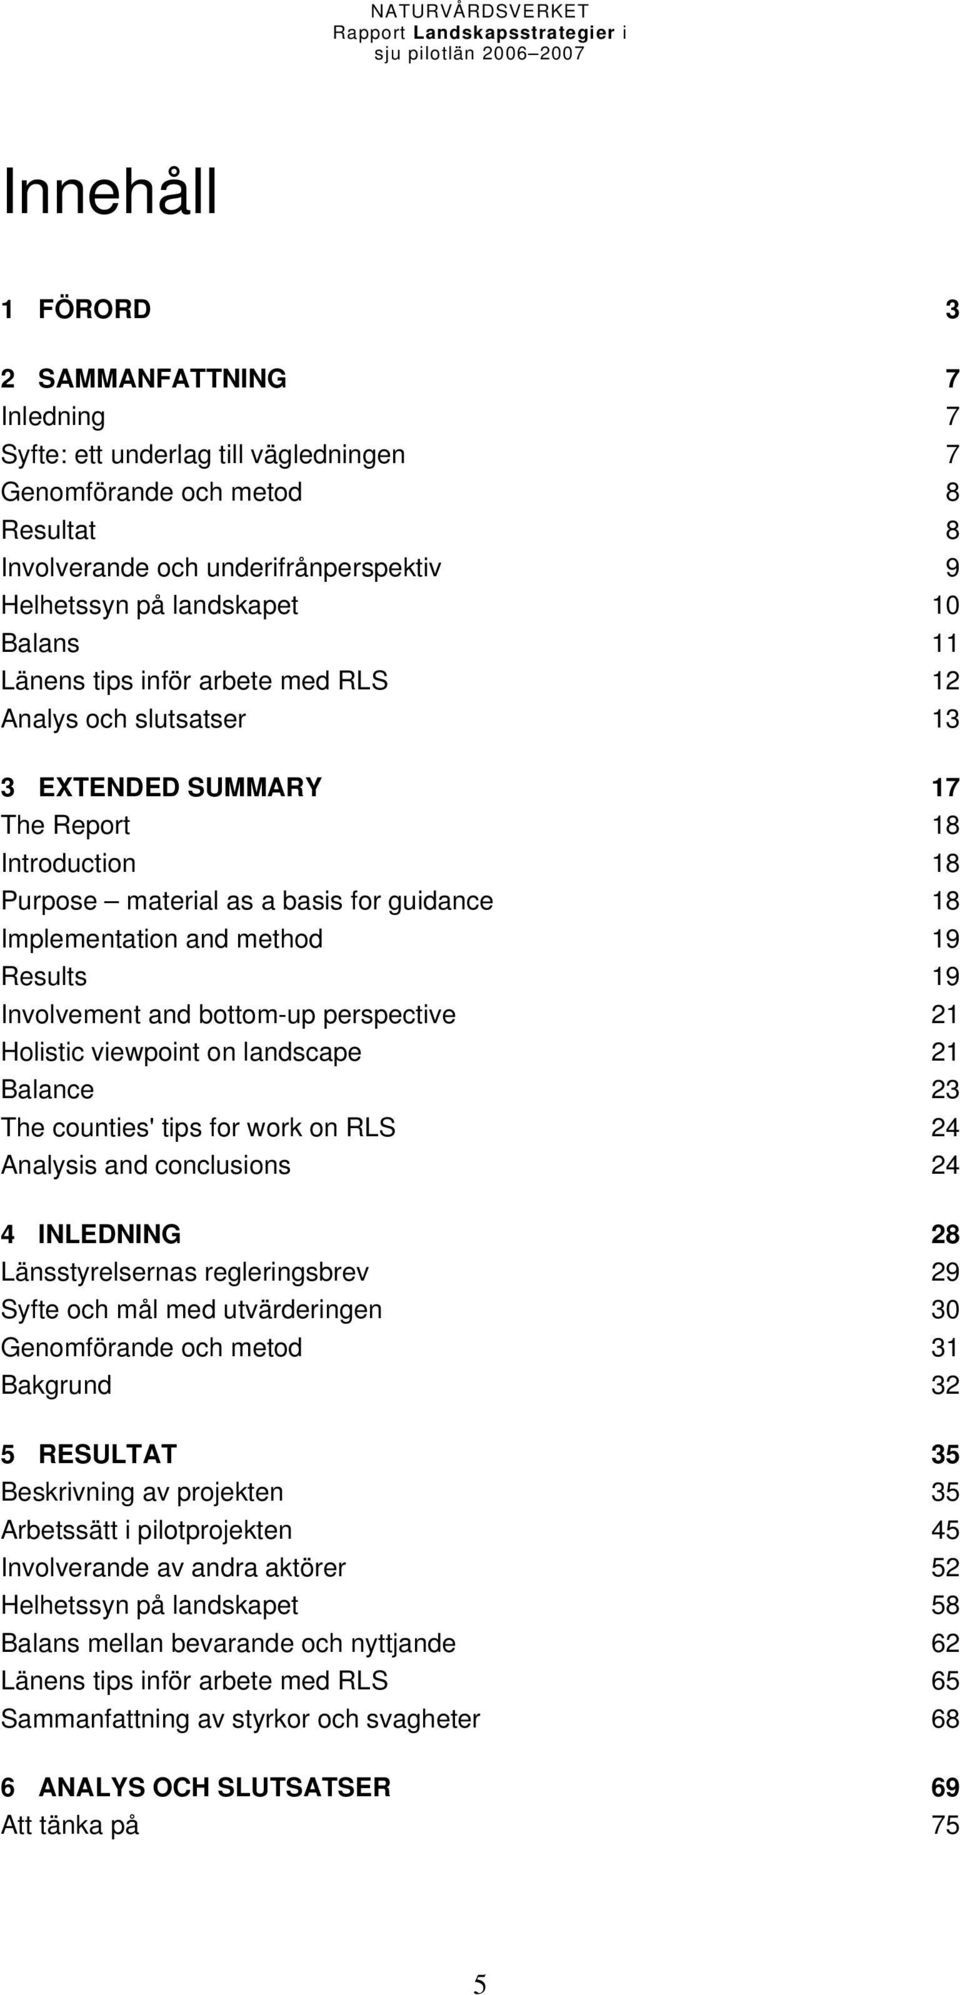 Results 19 Involvement and bottom-up perspective 21 Holistic viewpoint on landscape 21 Balance 23 The counties' tips for work on RLS 24 Analysis and conclusions 24 4 INLEDNING 28 Länsstyrelsernas